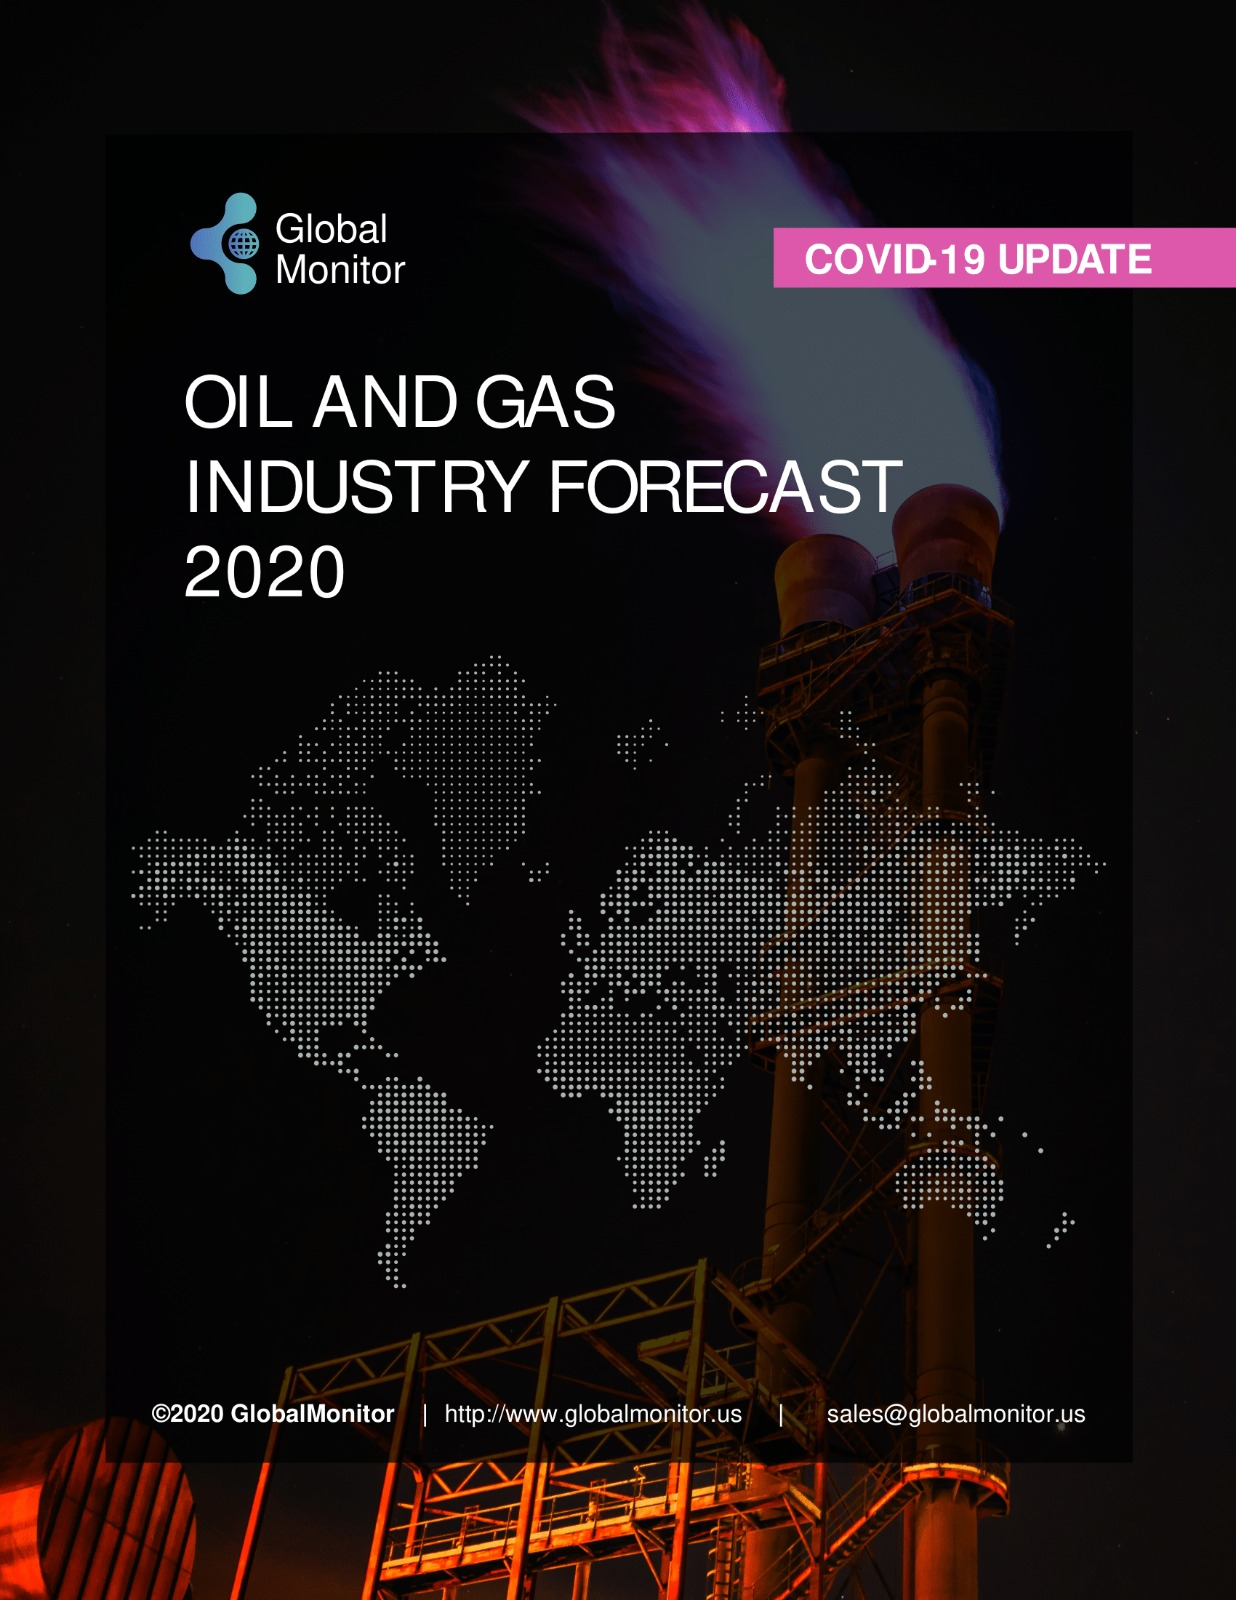 Iraq Oil and Gas Market Report with COVID-19 impact Analysis (2020-2025)